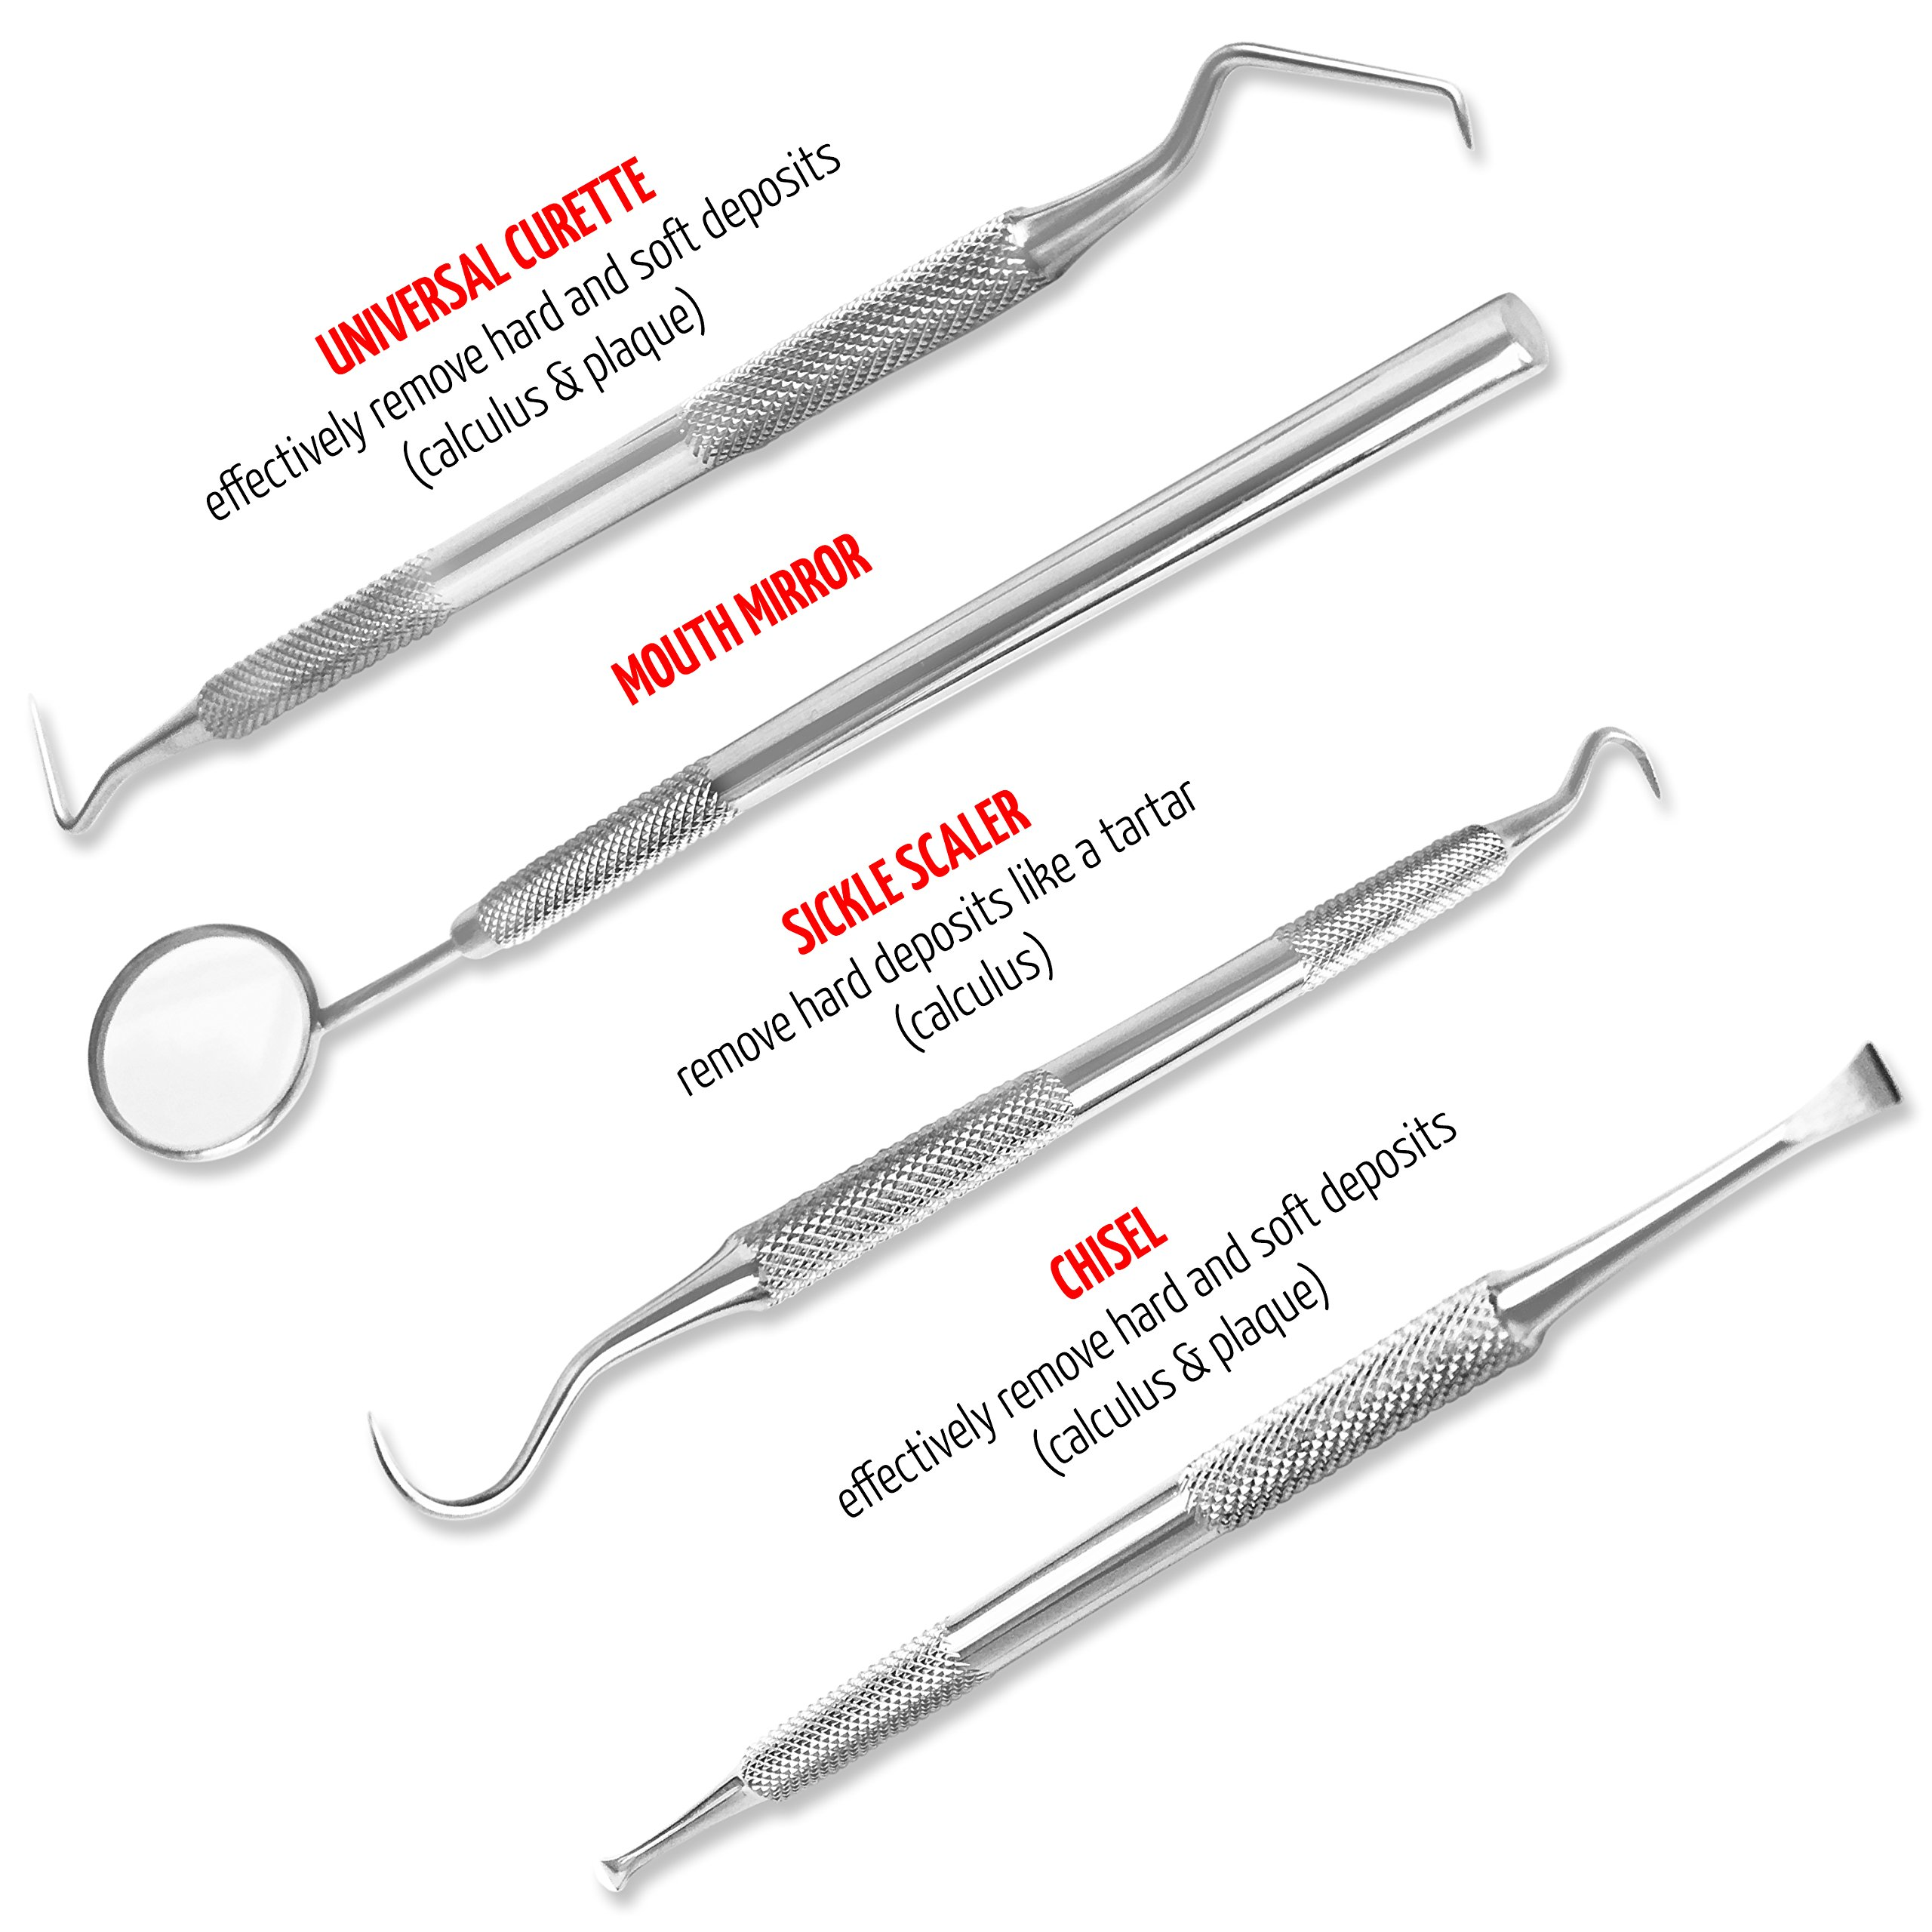 Essential Dental Hygiene Kit 3 Pcs By Marks Gouger Personal Tarter Scraper - Scaling Instrument, Toothpick & Oral Mouth Mirror Effective Way to Maintain Your Oral Hygiene Between Dental Visits